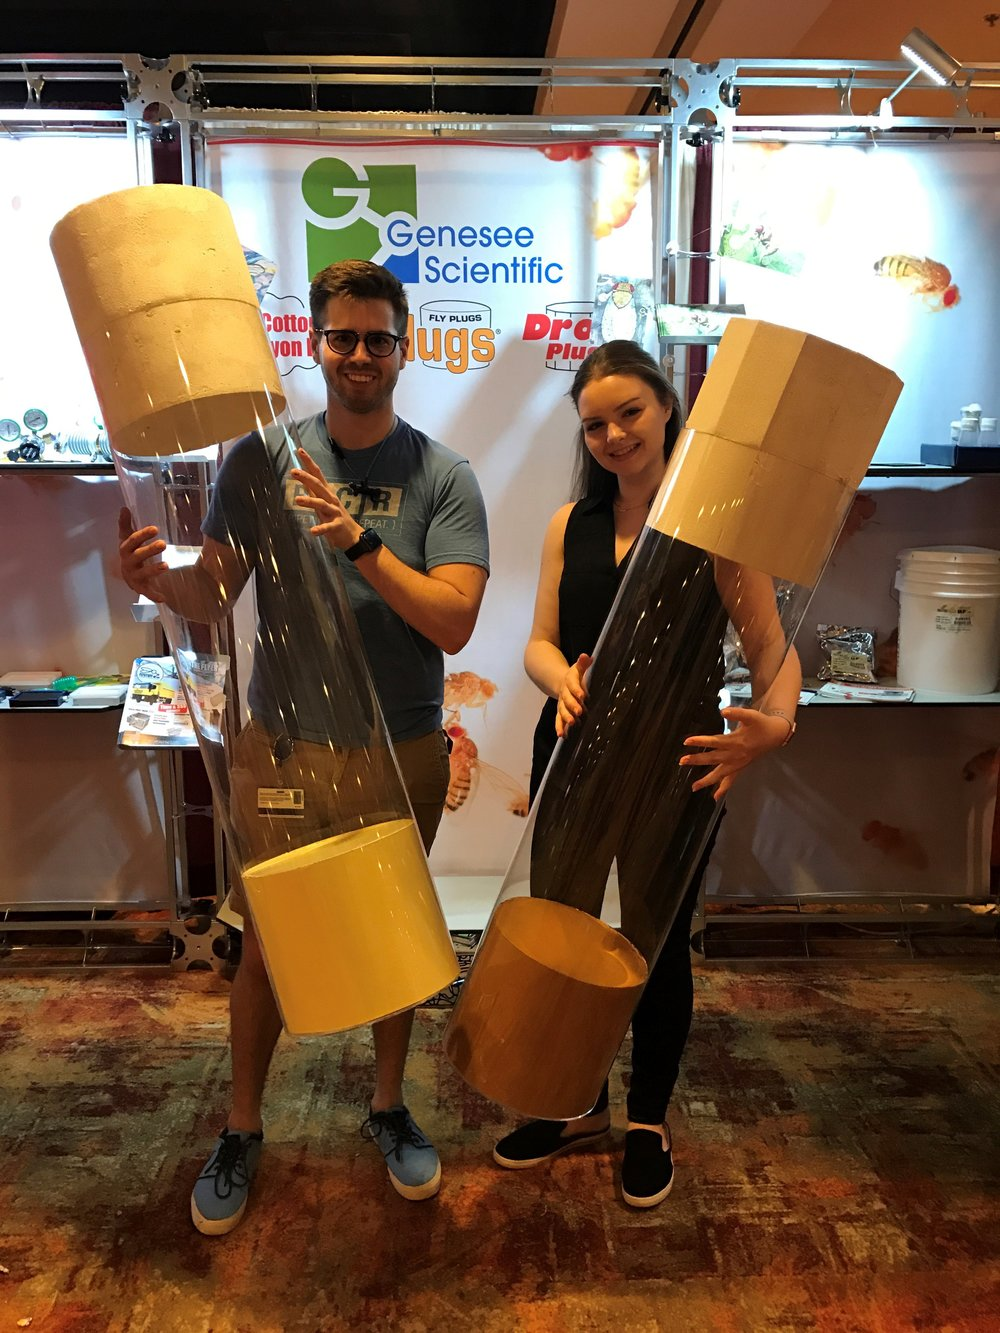 Mike and Alison couldn't resist getting a photo with the life-size vials from Genesee! No word yet on whether humans prefer molasses-media or dextrose-based media. Stay tuned!